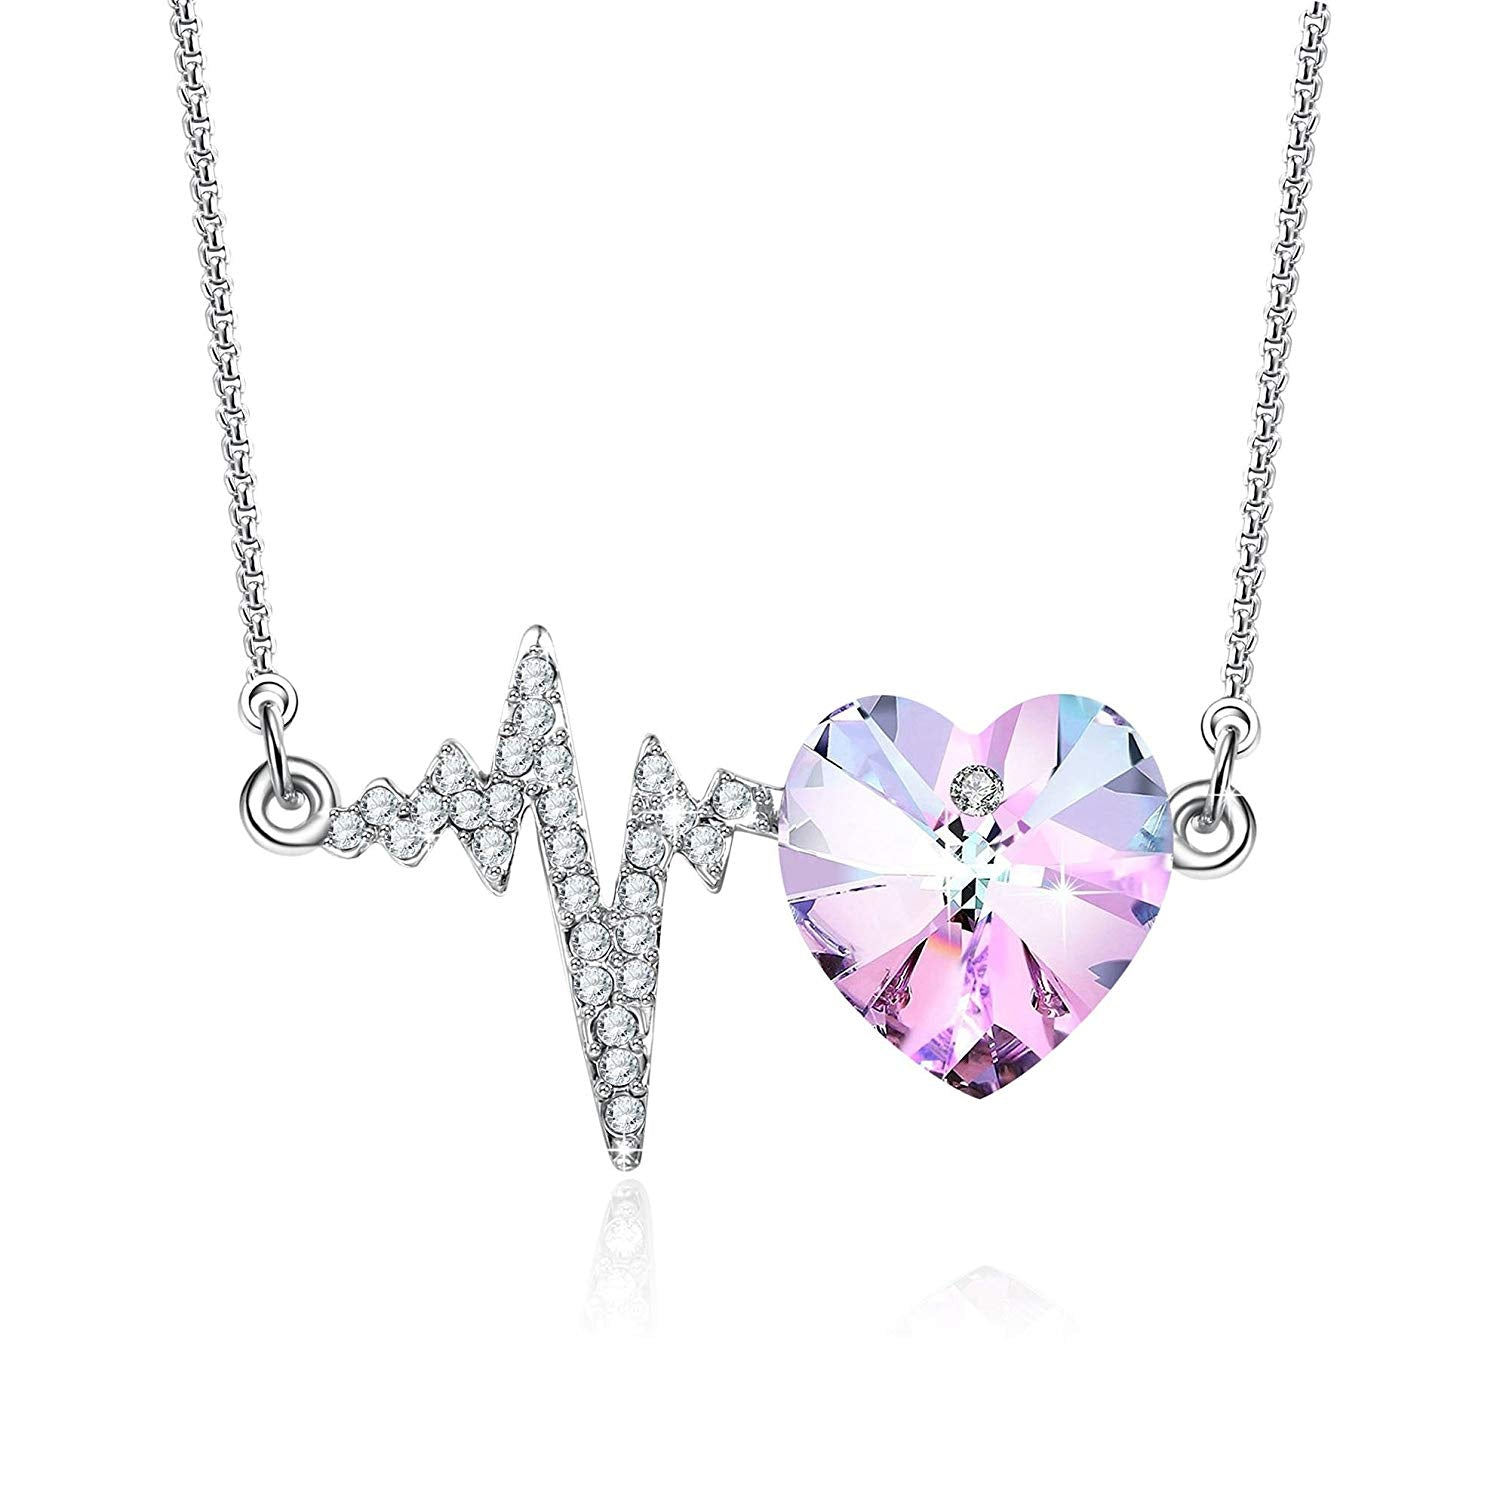 Crystal Pendant Necklace for Women Love Heart Necklace Crystal from Swarovski, Brides Bridesmaids Jewelry Gifts